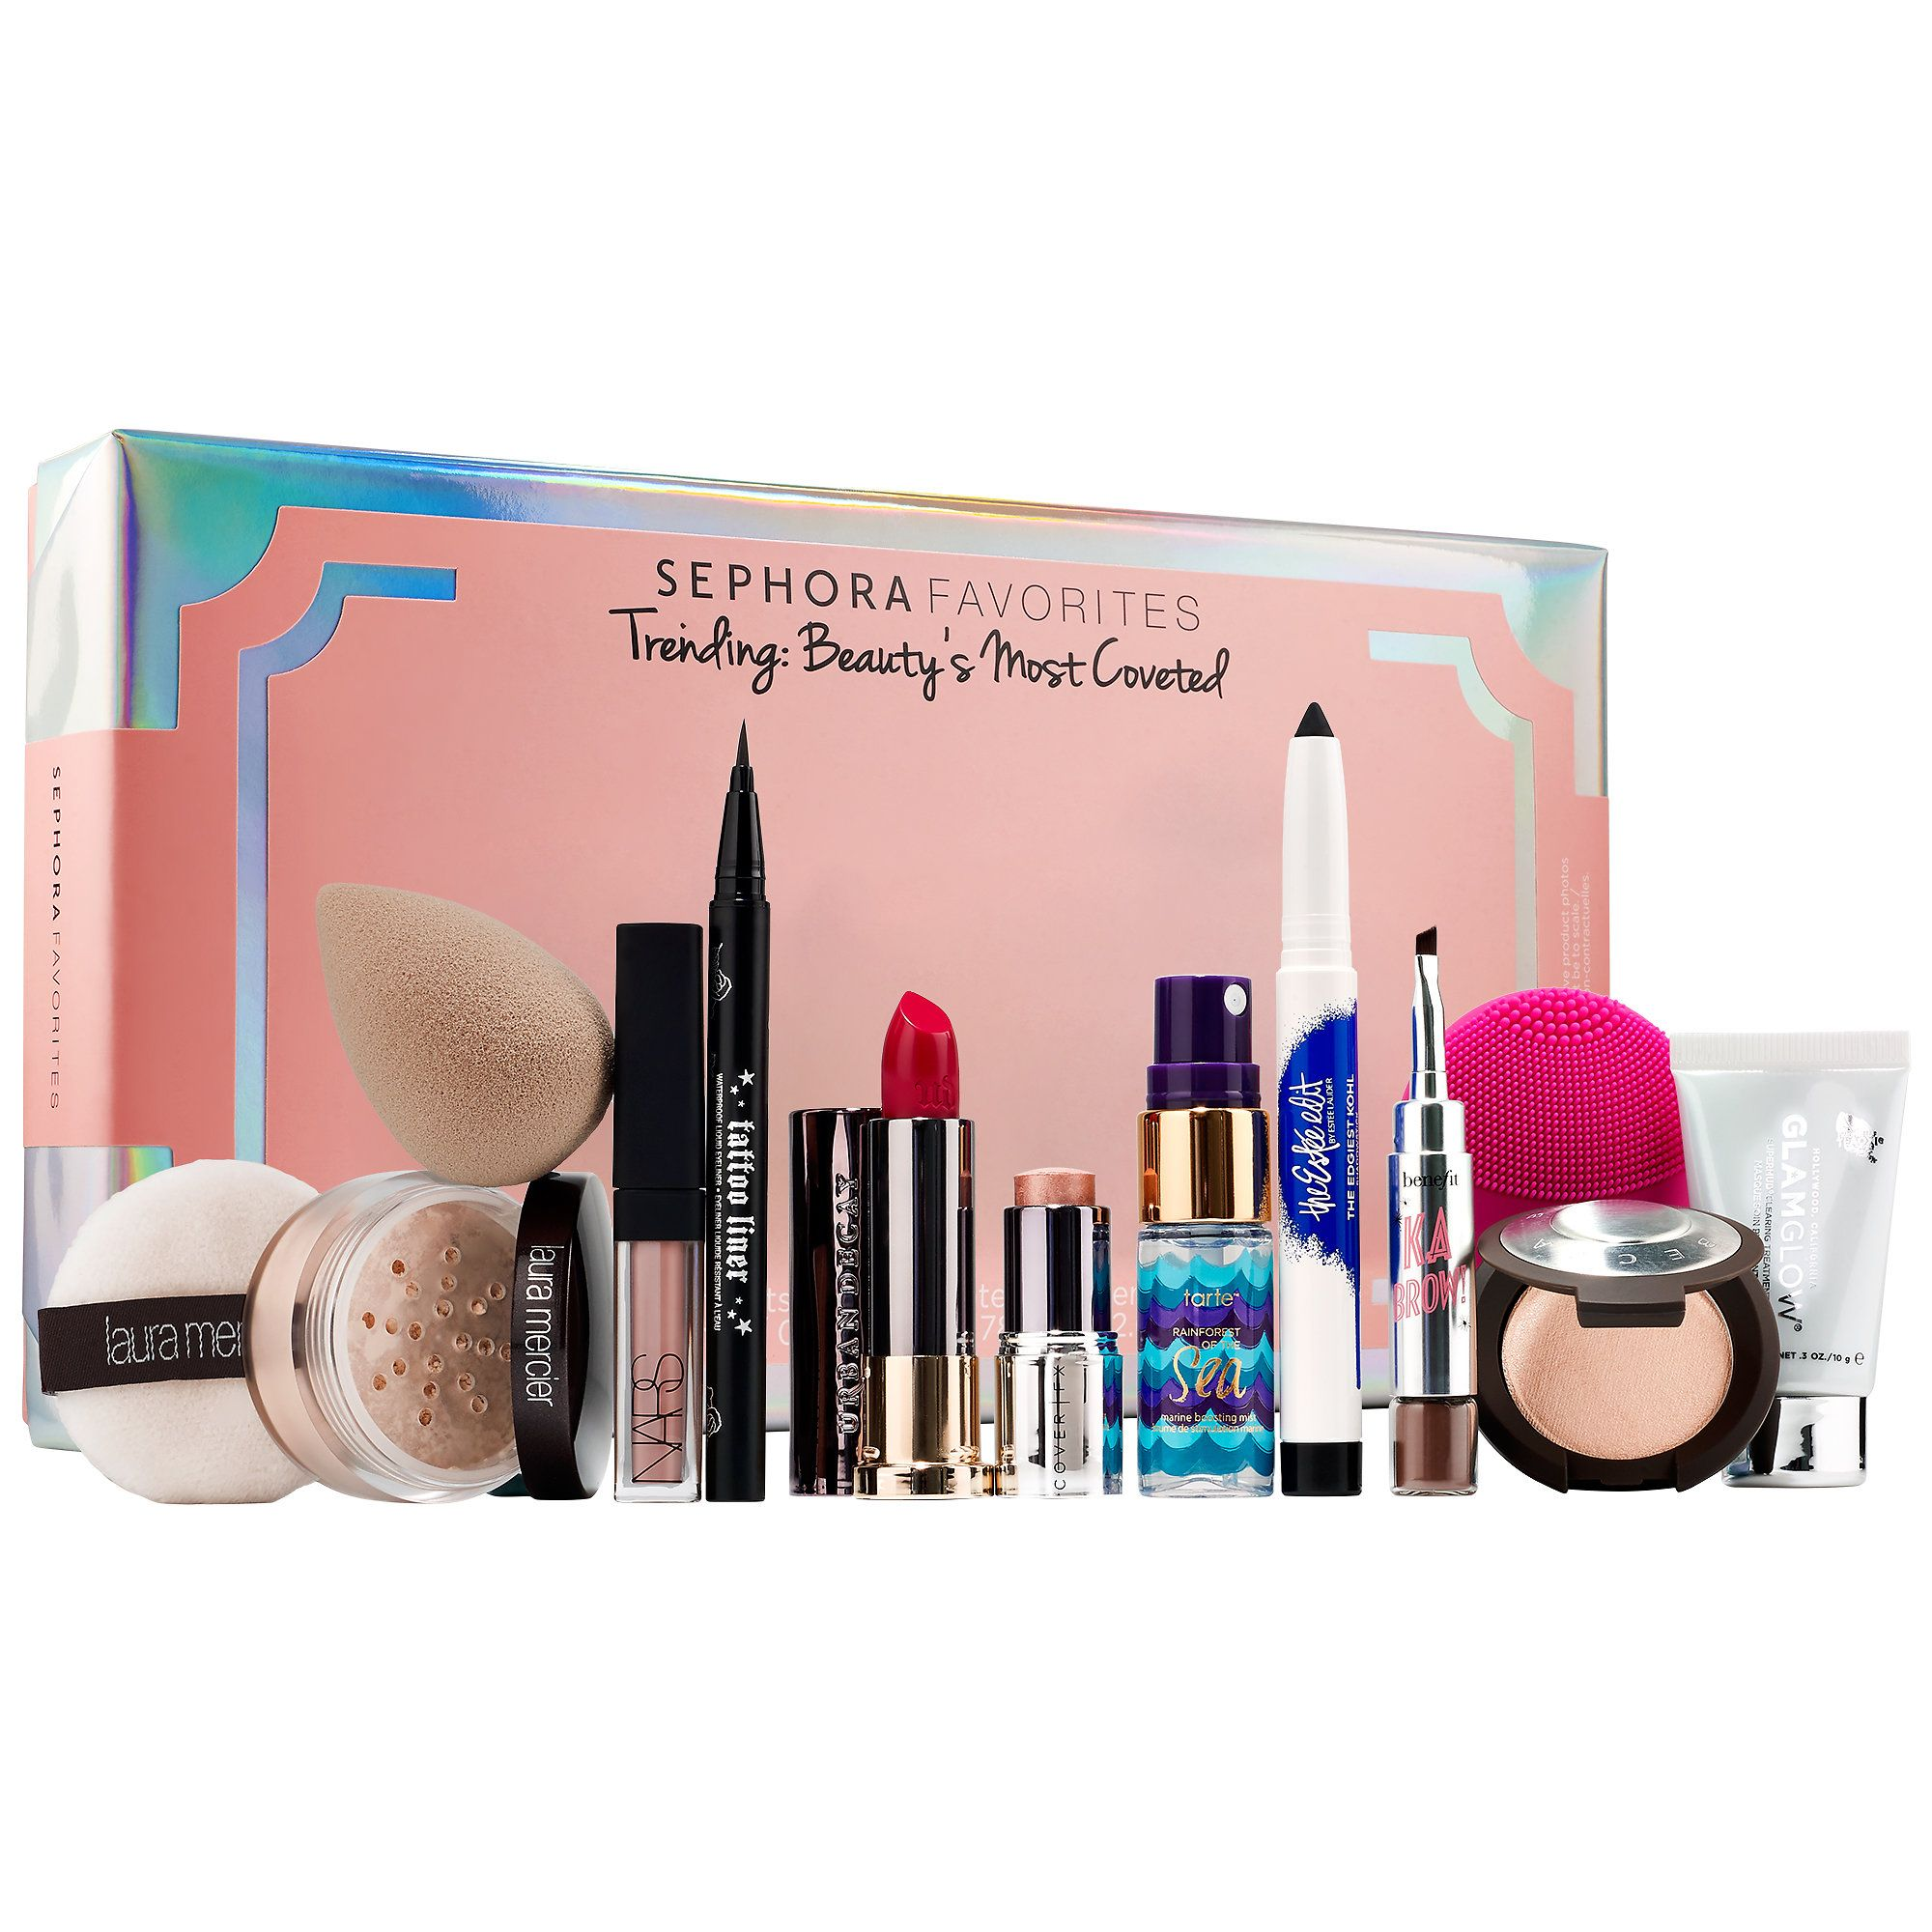 Sephora Favorites set Trending: Beauty's Most Coveted, new for ...